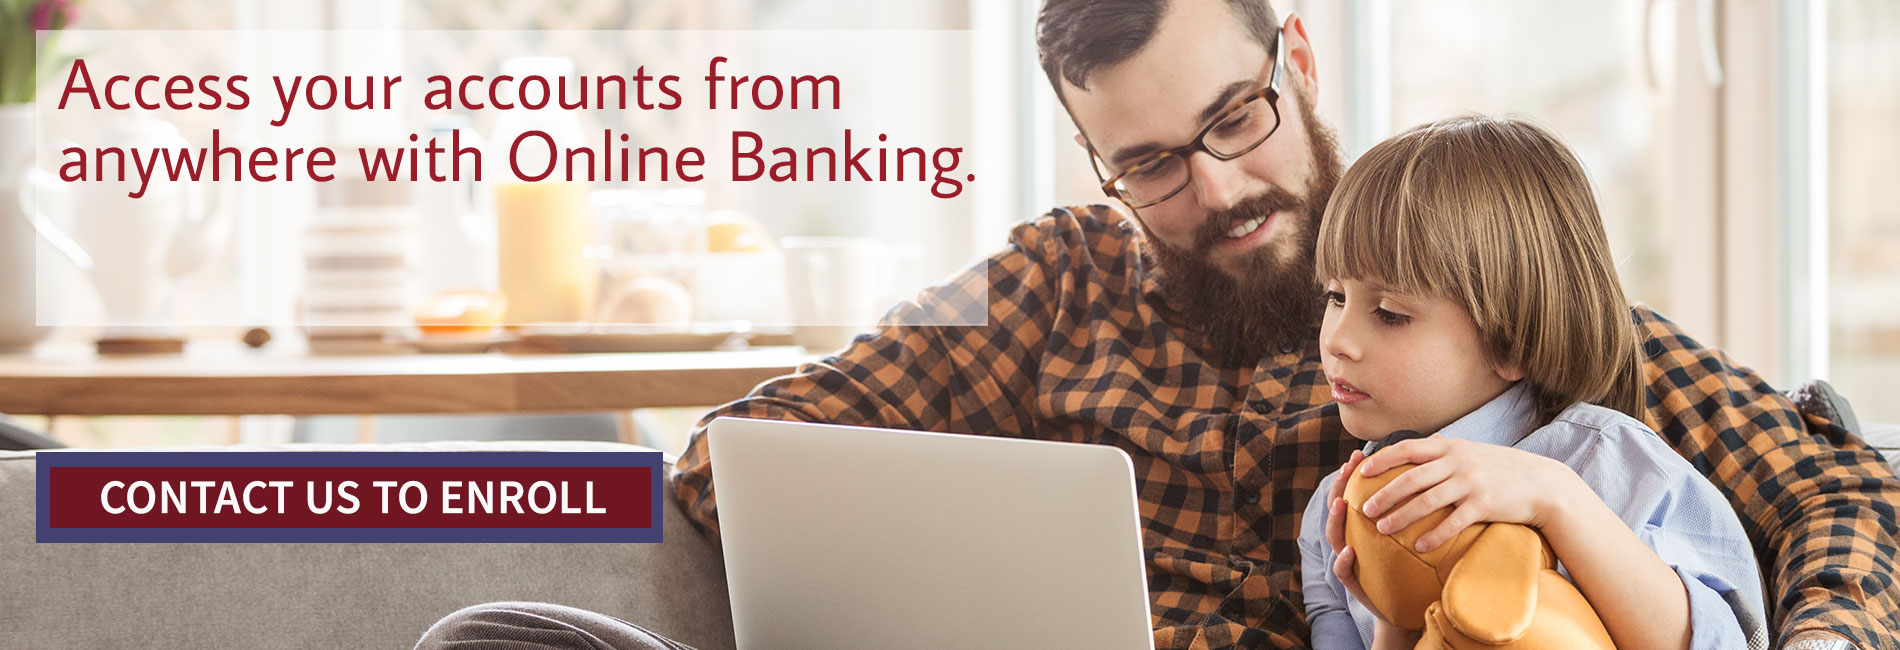 Access your accounts from anywhere with Online Banking. Contact us to enroll.